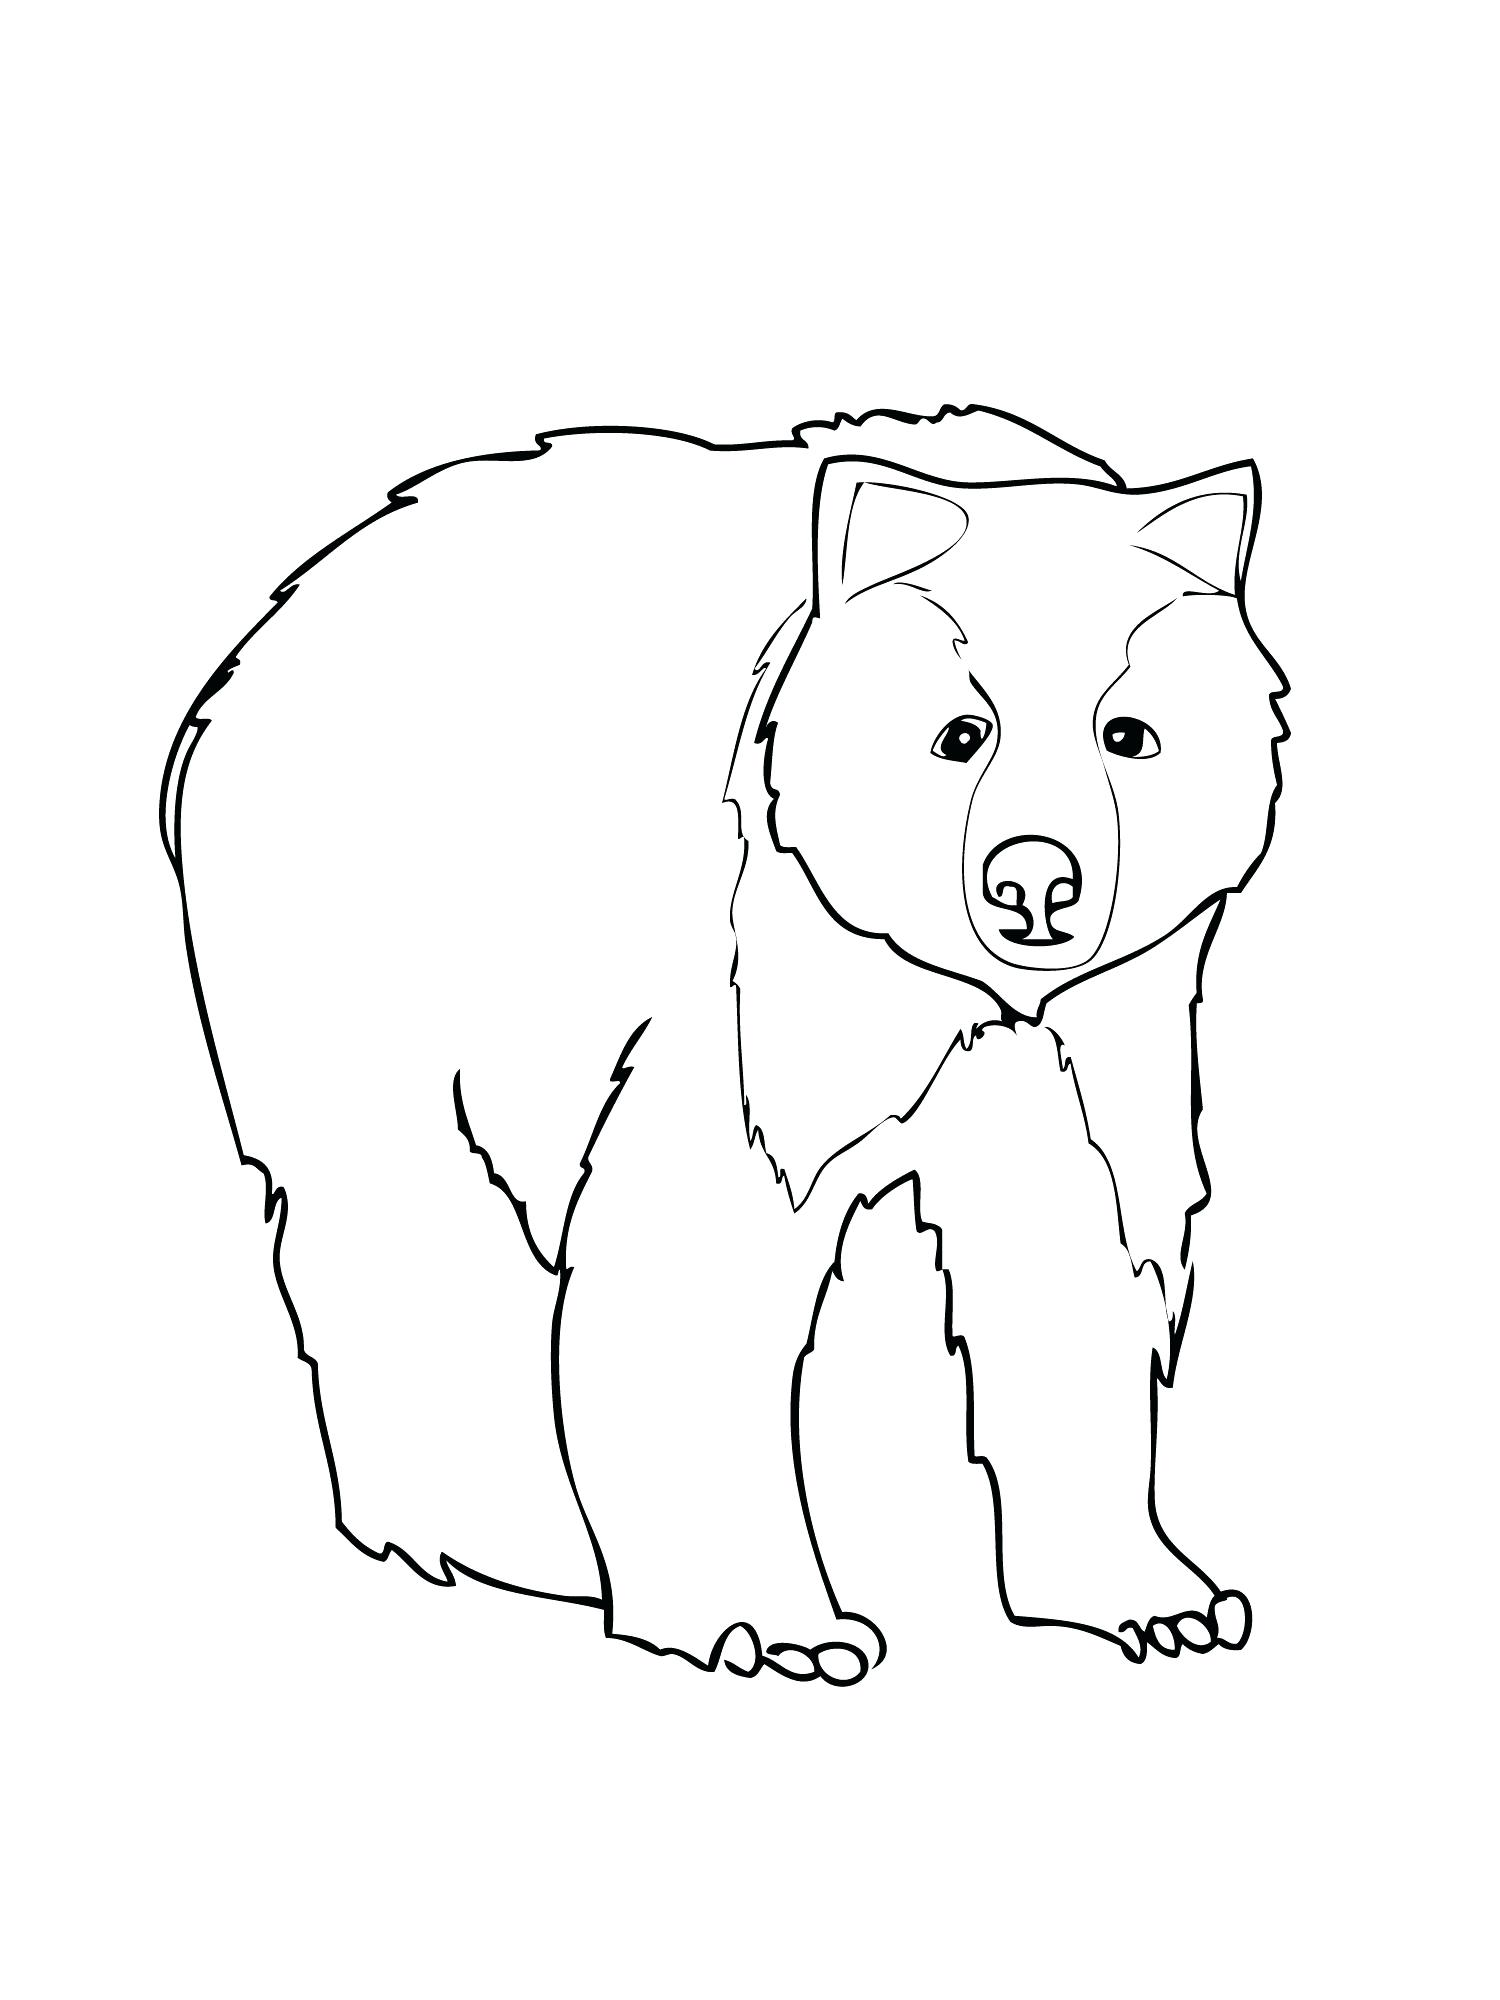 1500x2000 Coloring Grizzly Bear Coloring Pages Page. Grizzly Bear Coloring